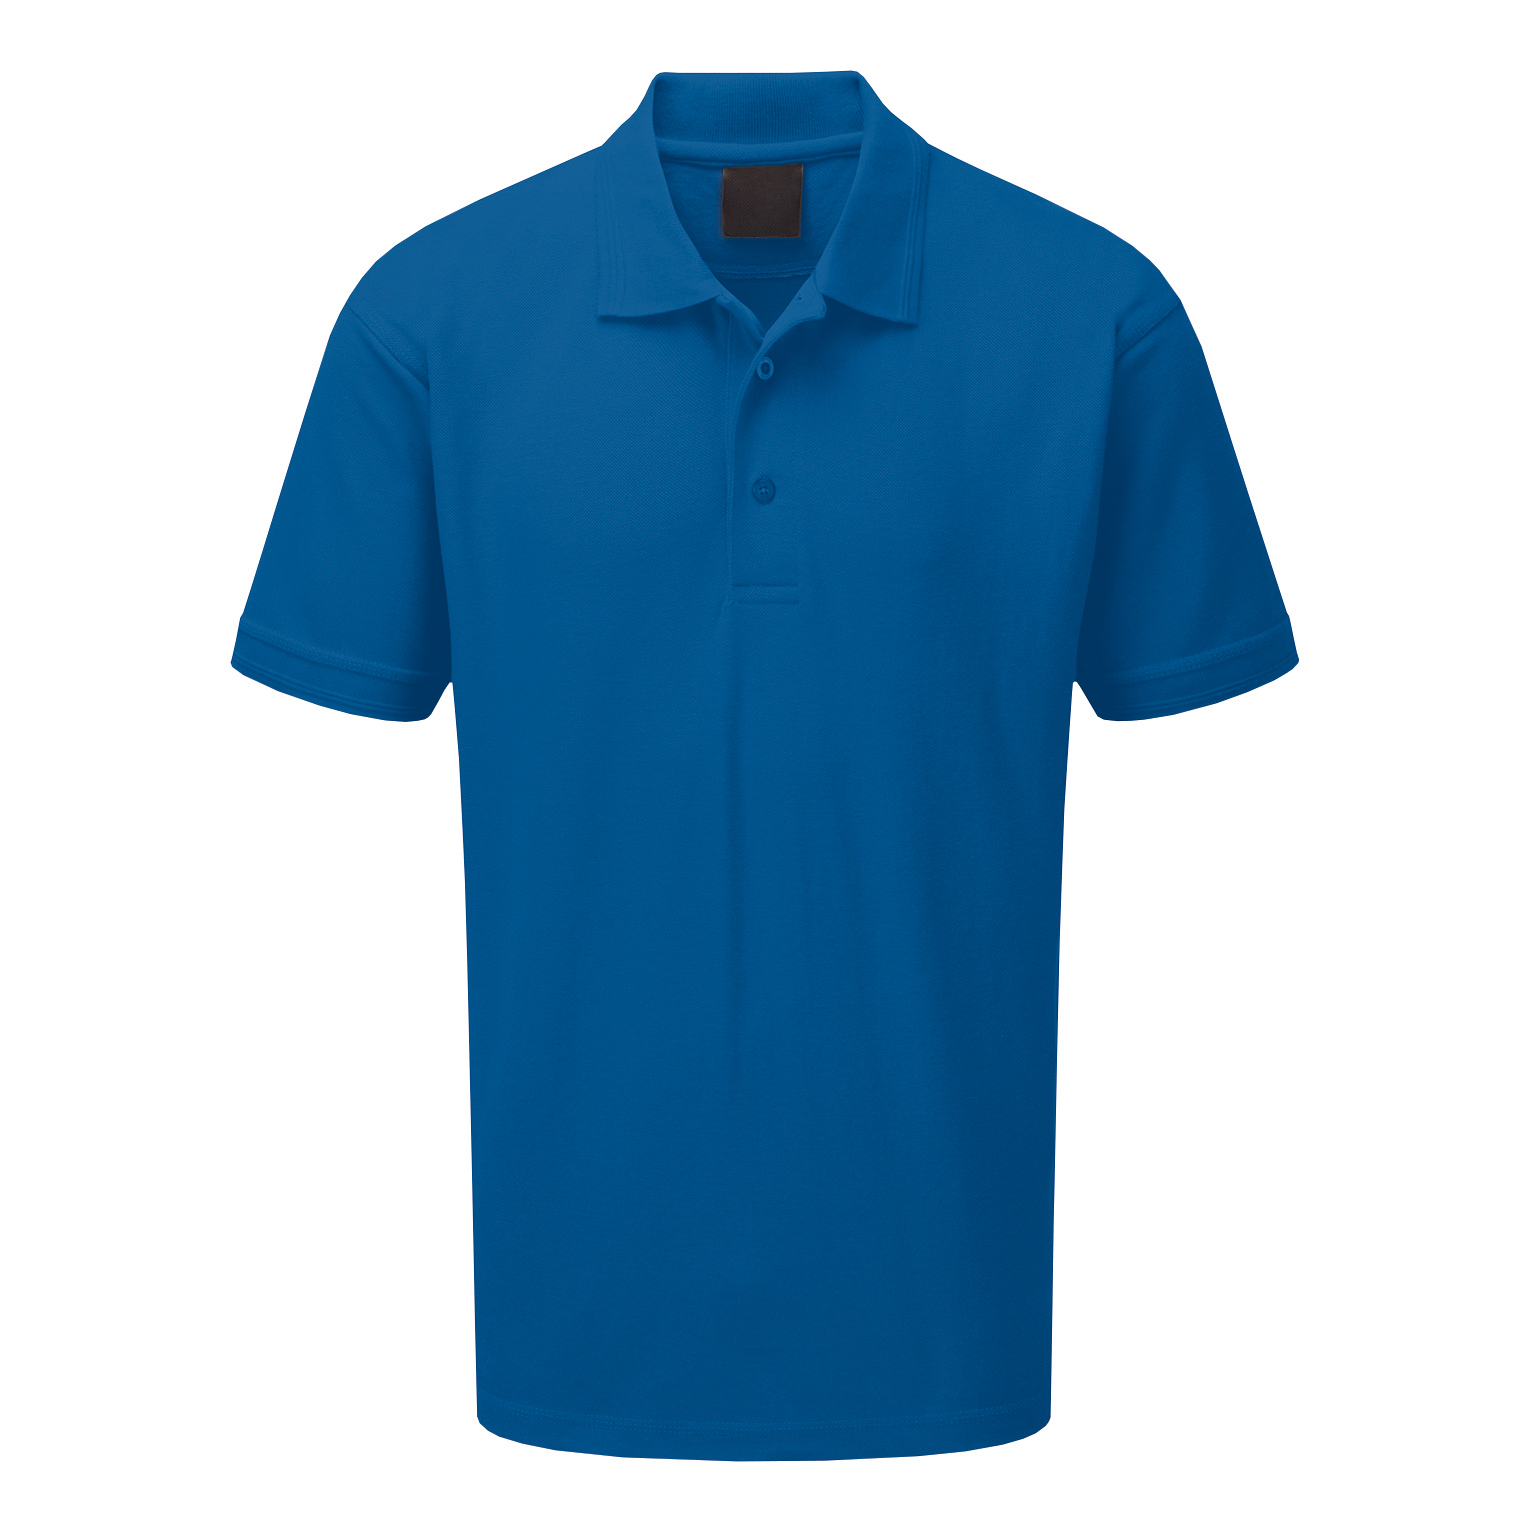 Premium Polo Shirt Triple Button 220gsm Polycotton Large Royal Blue Ref CLPKSRL *Approx 3 Day Leadtime*